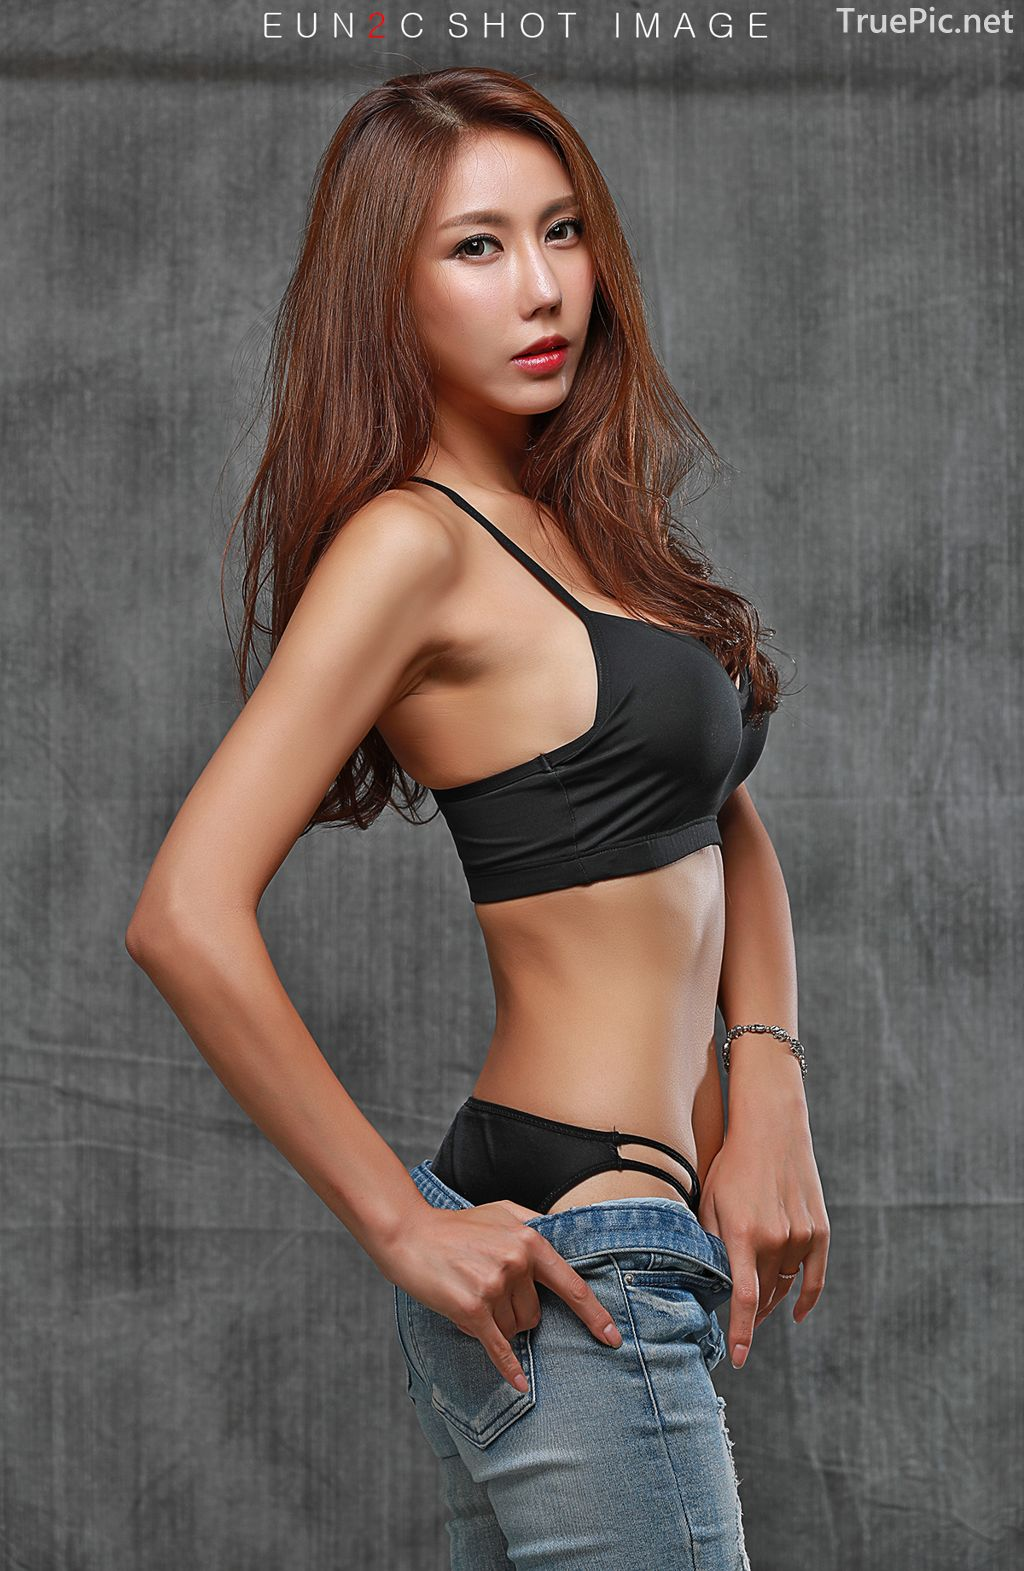 Image-Korean-model-Choi-Ye-Rok-Back-Lingerie-and-Jean-TruePic.net- Picture-8